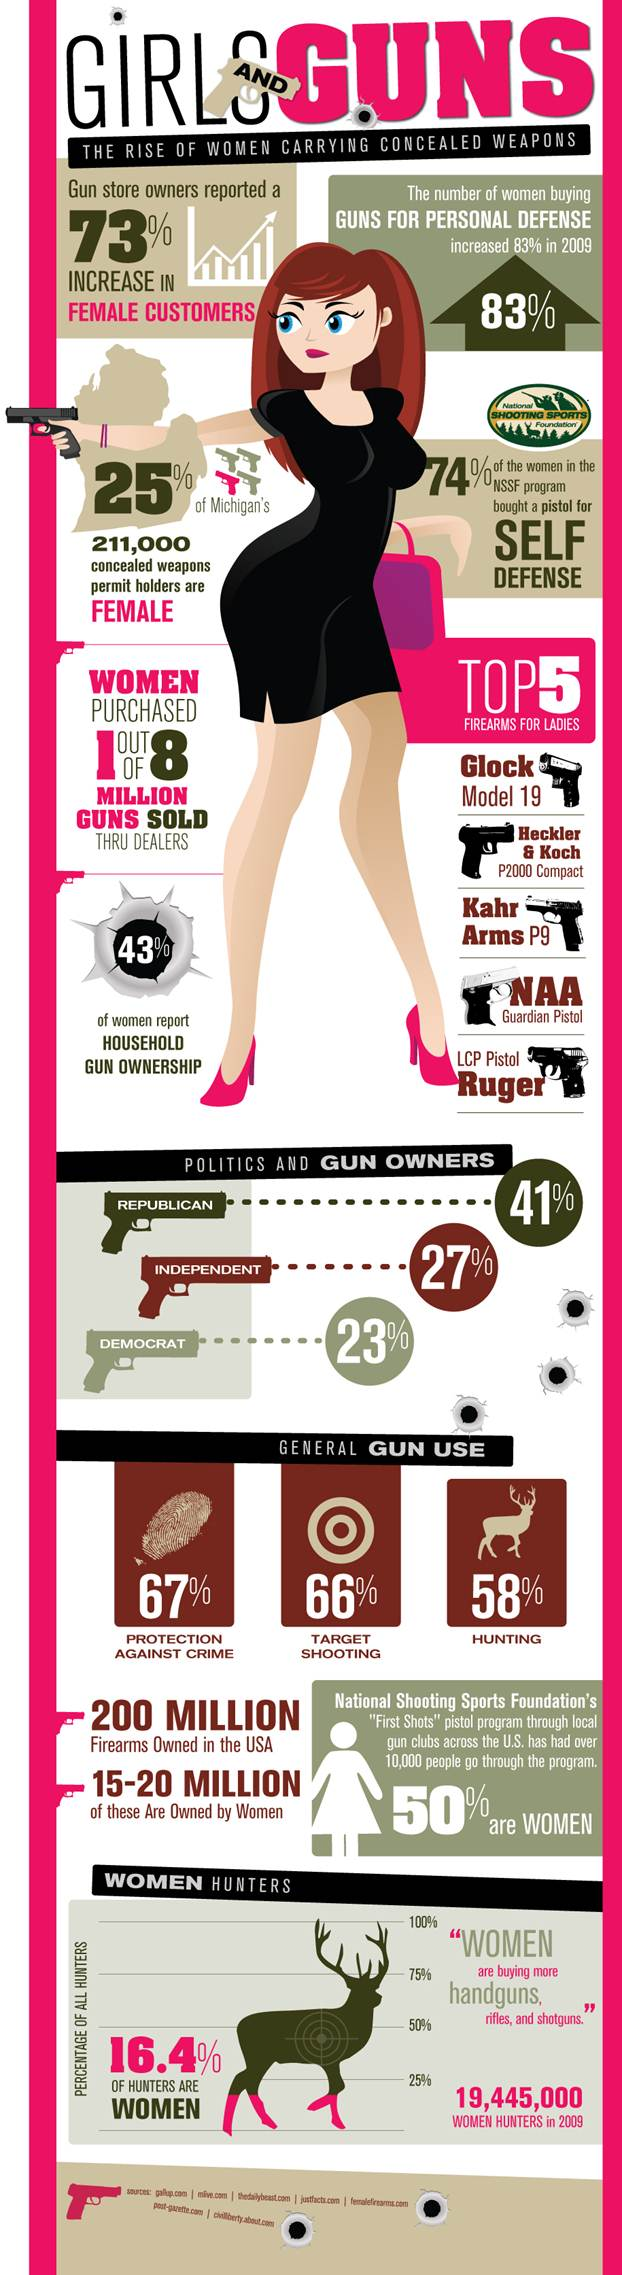 girls--guns--the-rise-of-women-carrying-concealed-weapons_502917c2111e4